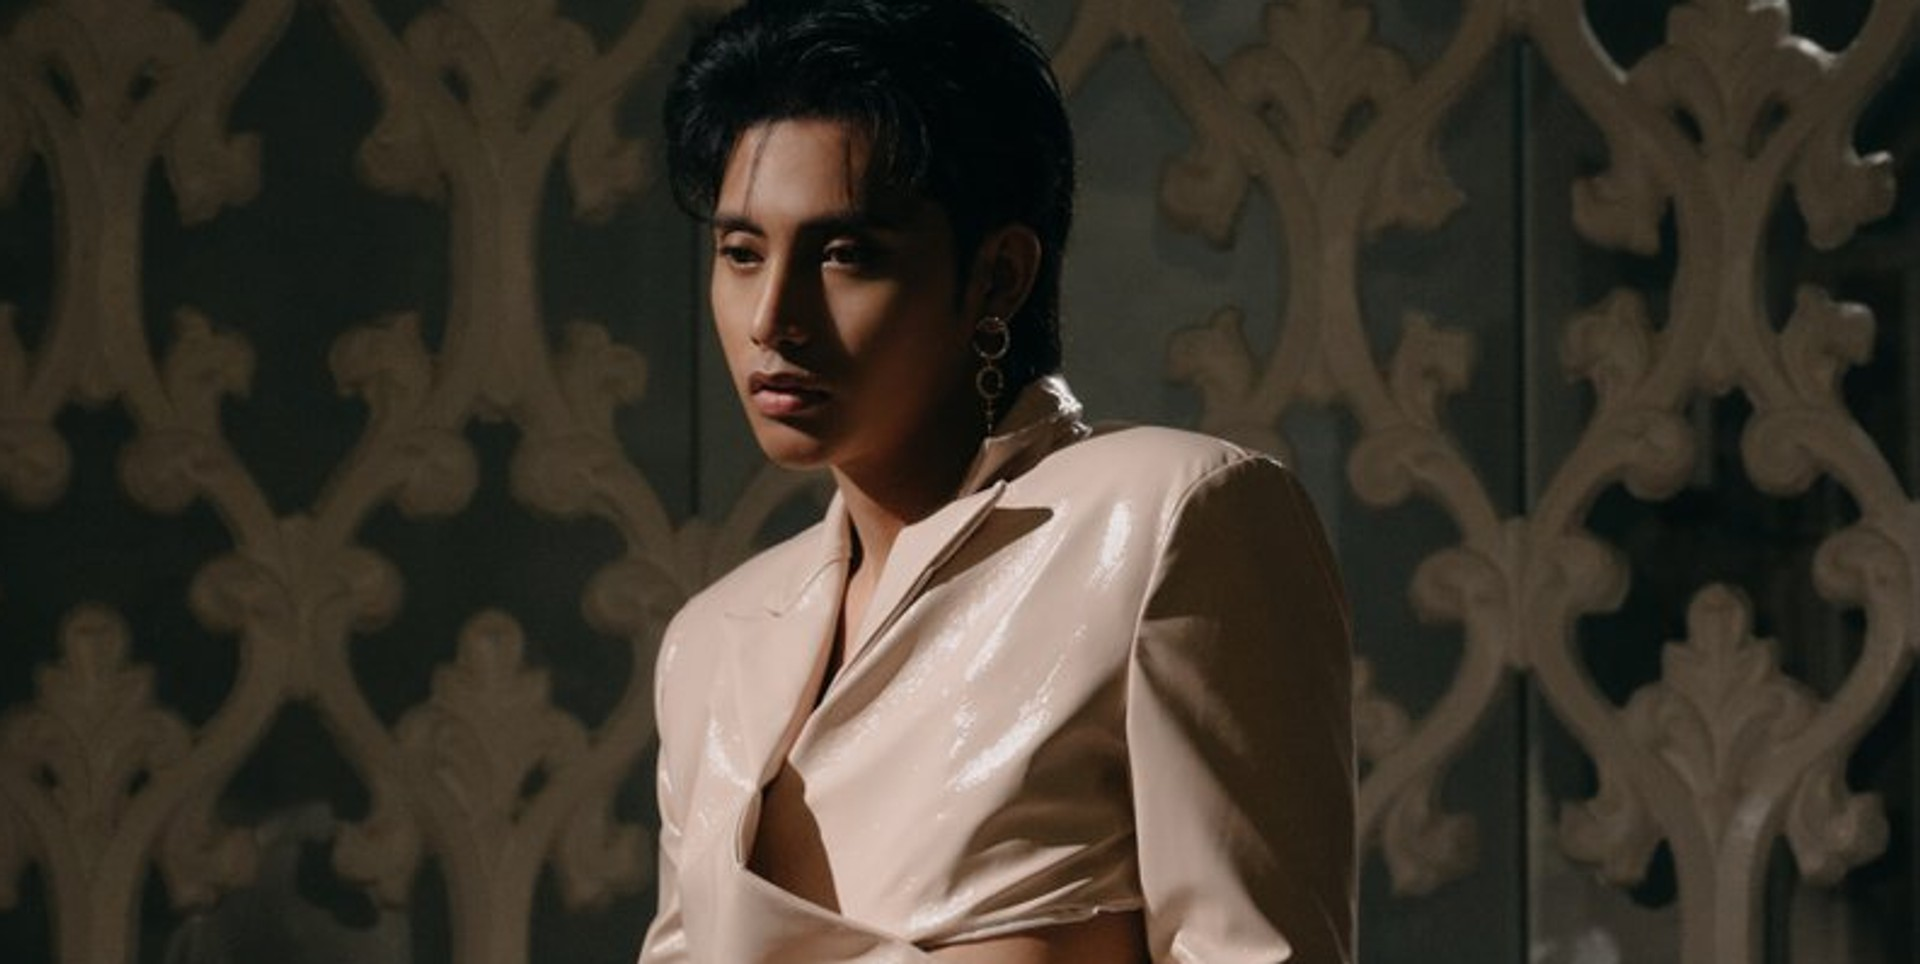 SB19's Ken to make solo debut as FELIP with 'Palayo'